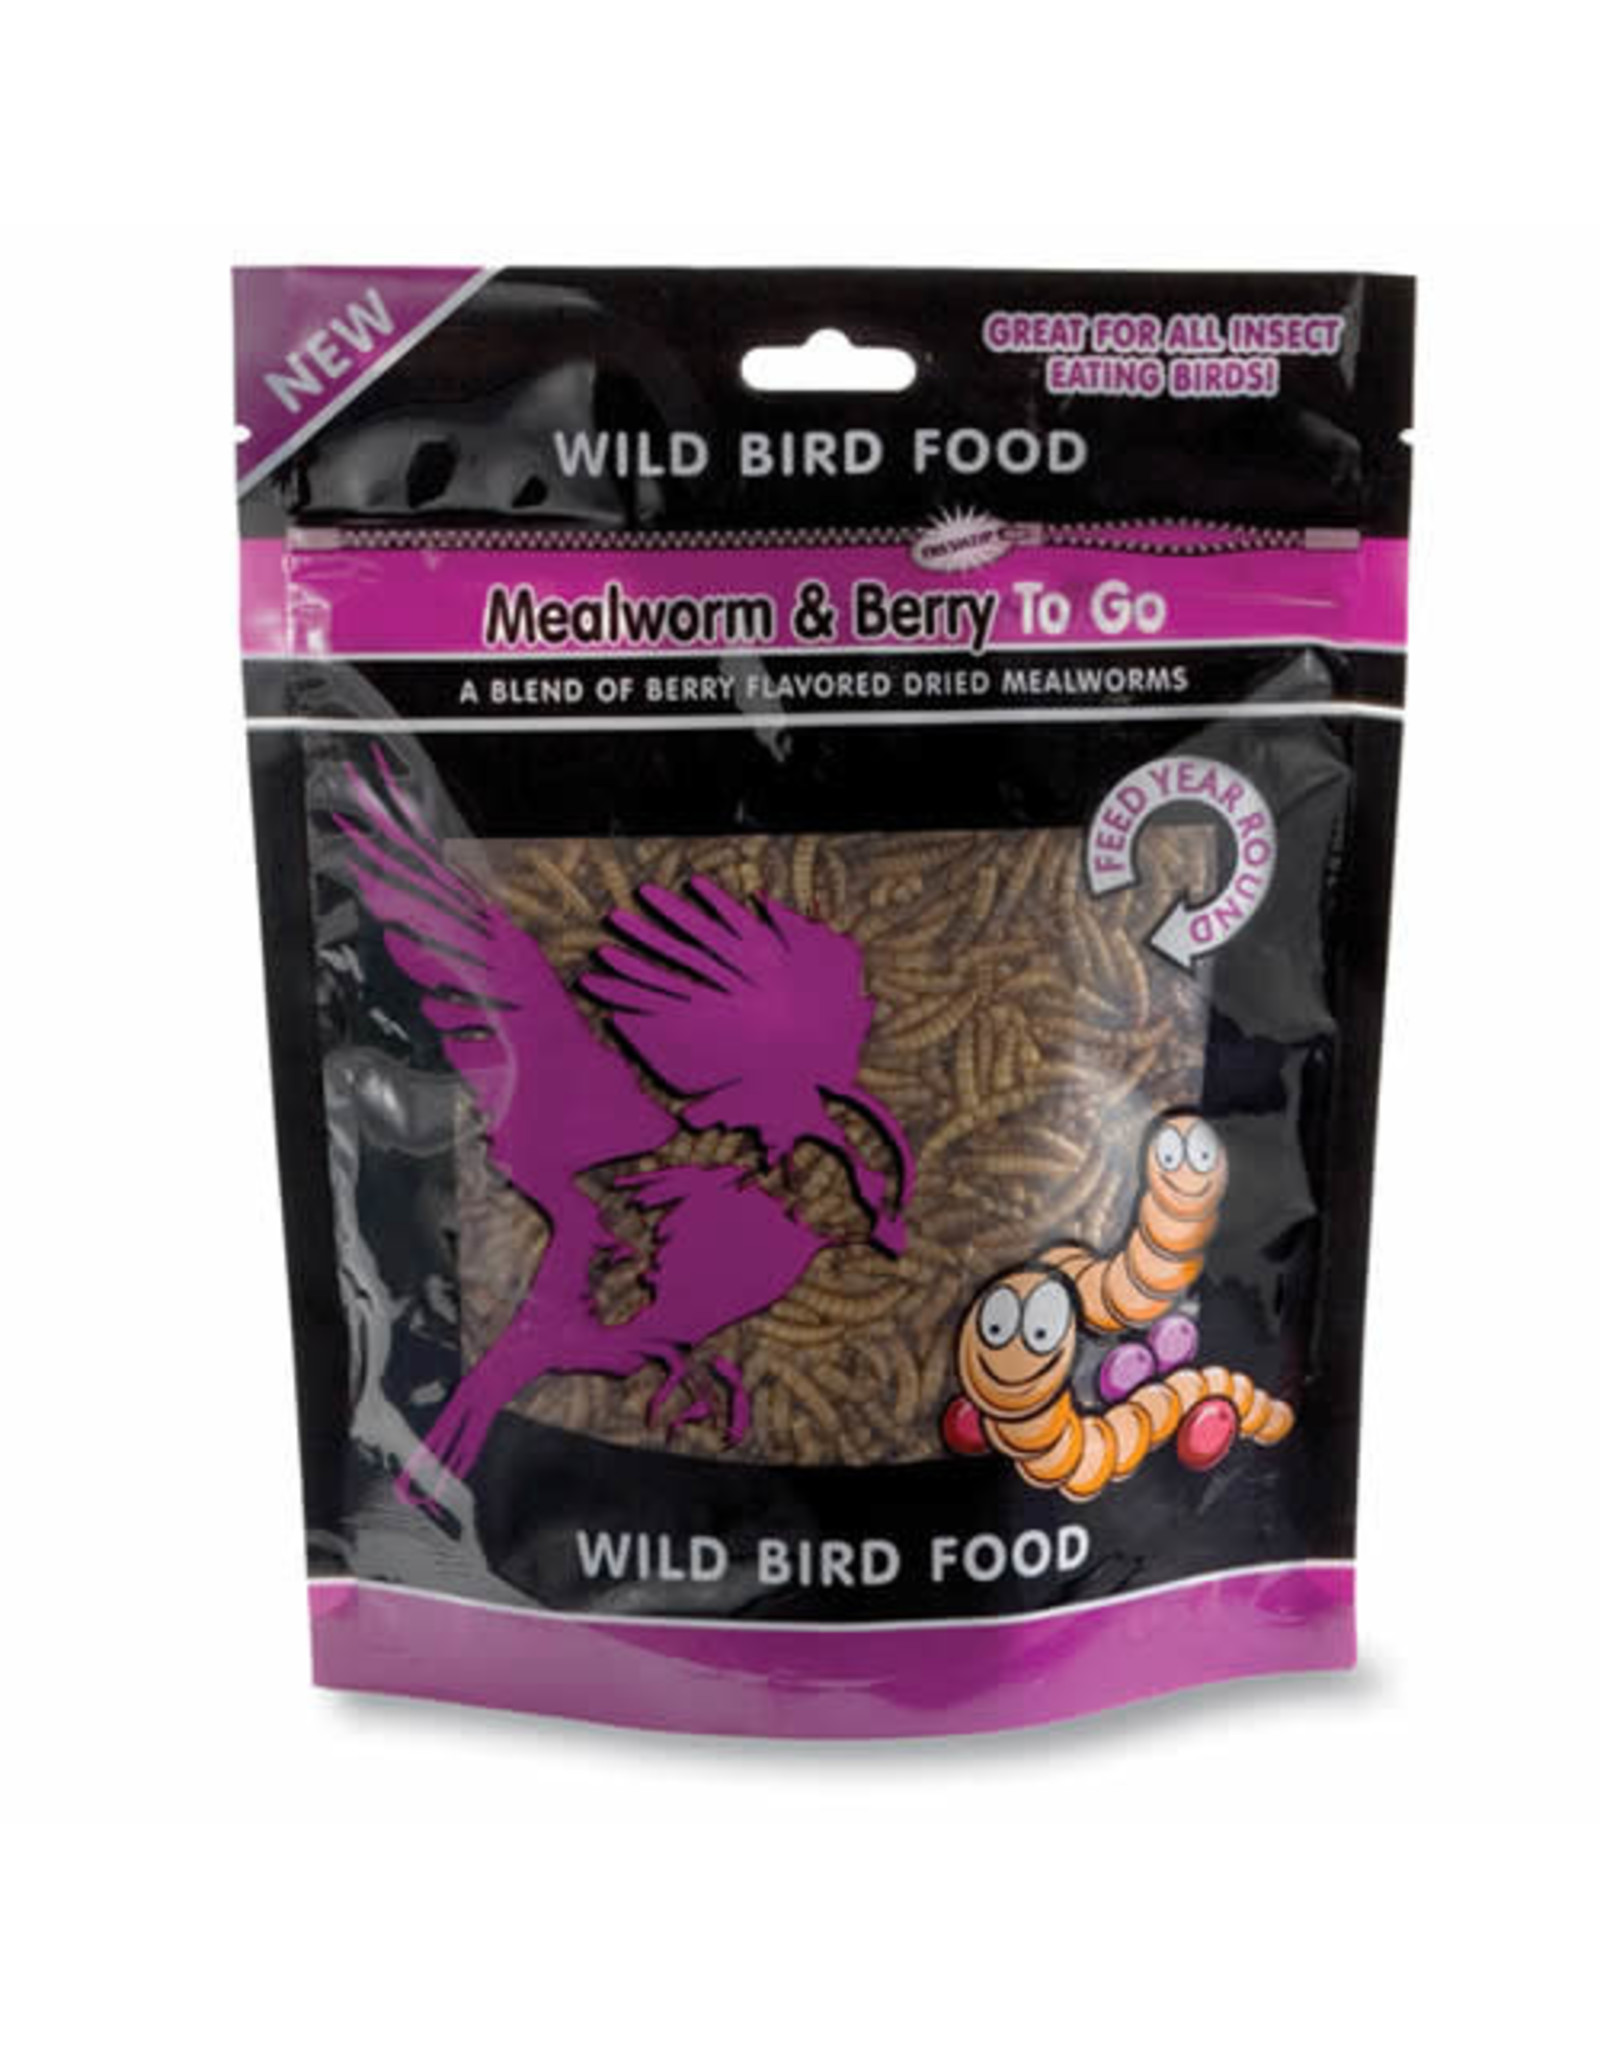 Mealworms & Berries To Go 3.5oz